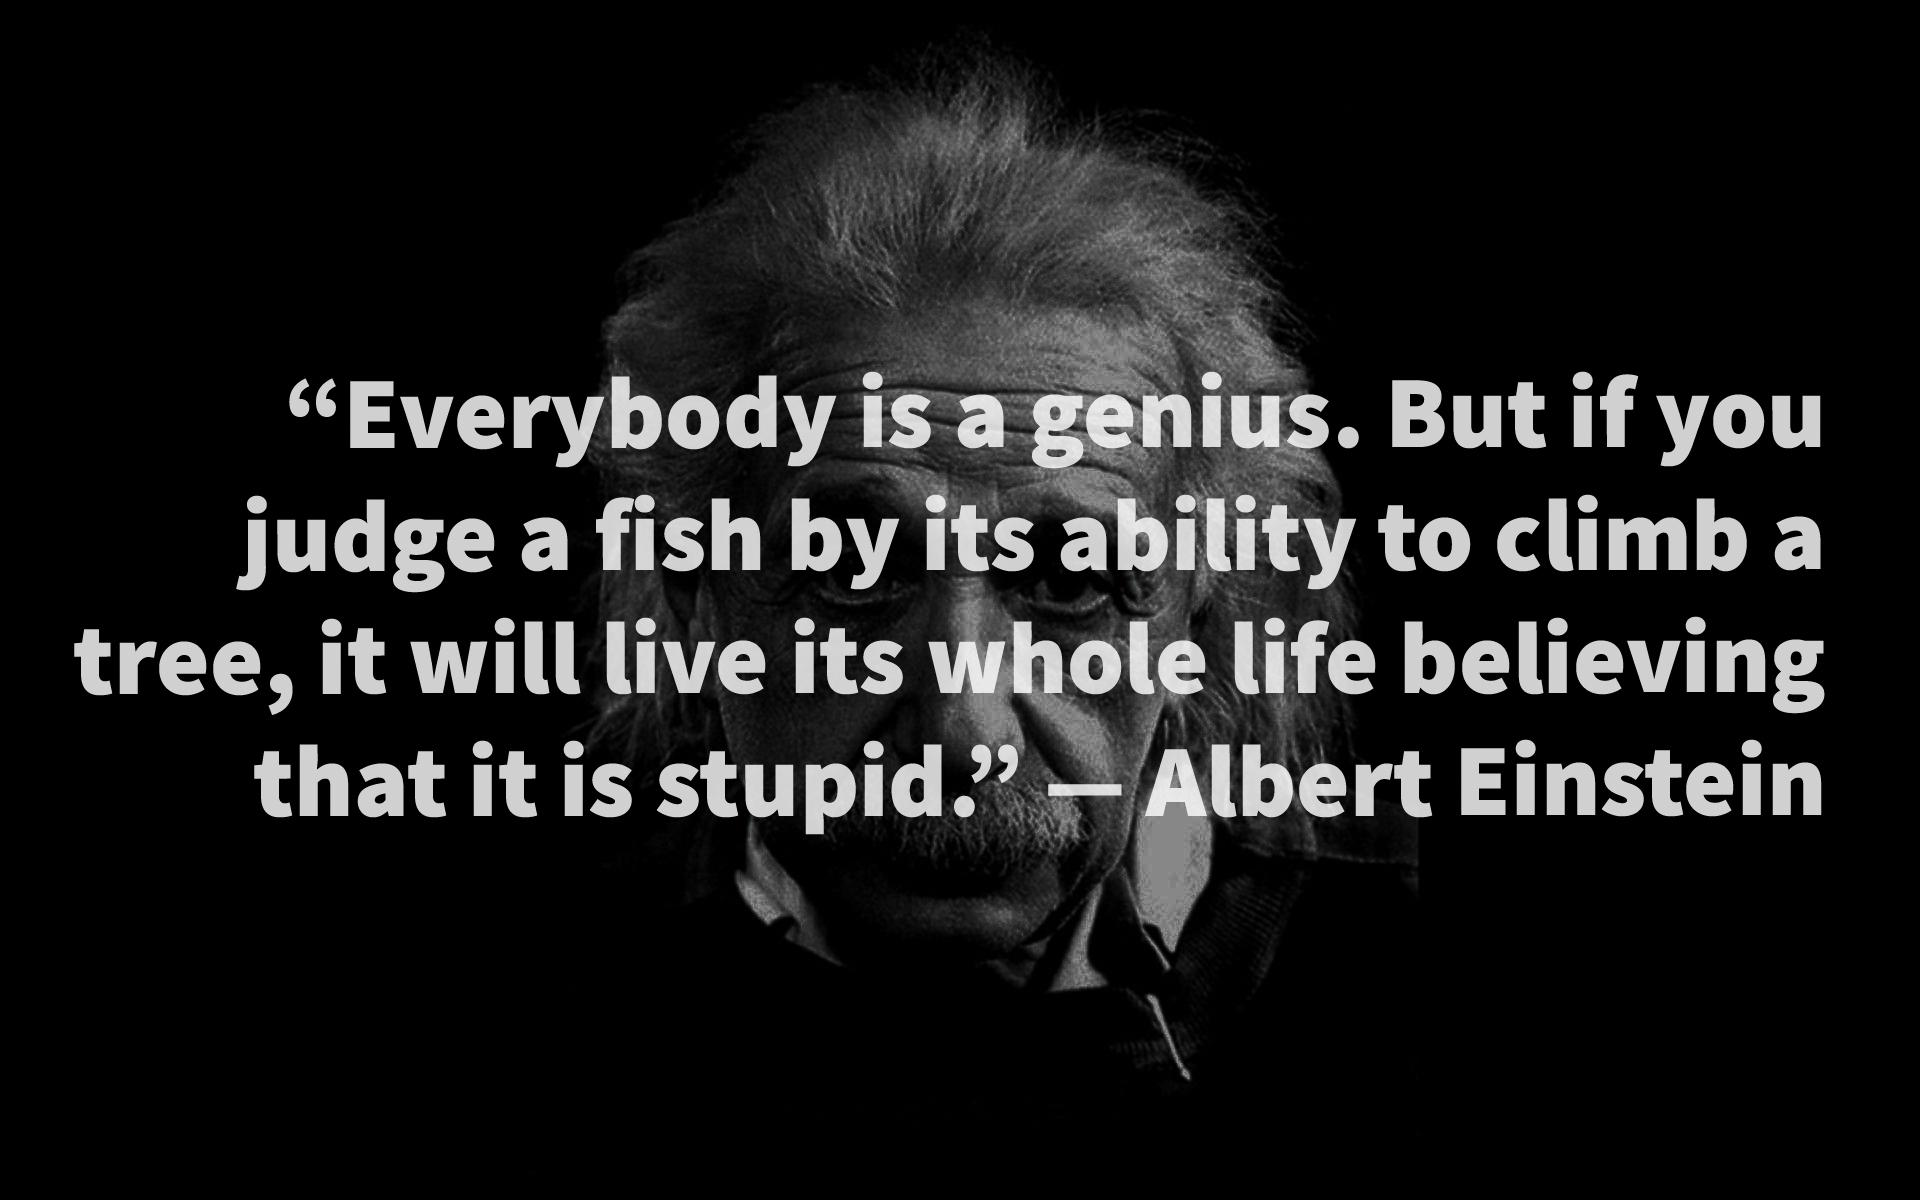 """Everybody is a genius. But if you judge a fish by its ability to climb a tree, it will live its whole life believing that it is stupid."" — Albert Einstein [4000 x 2500]"